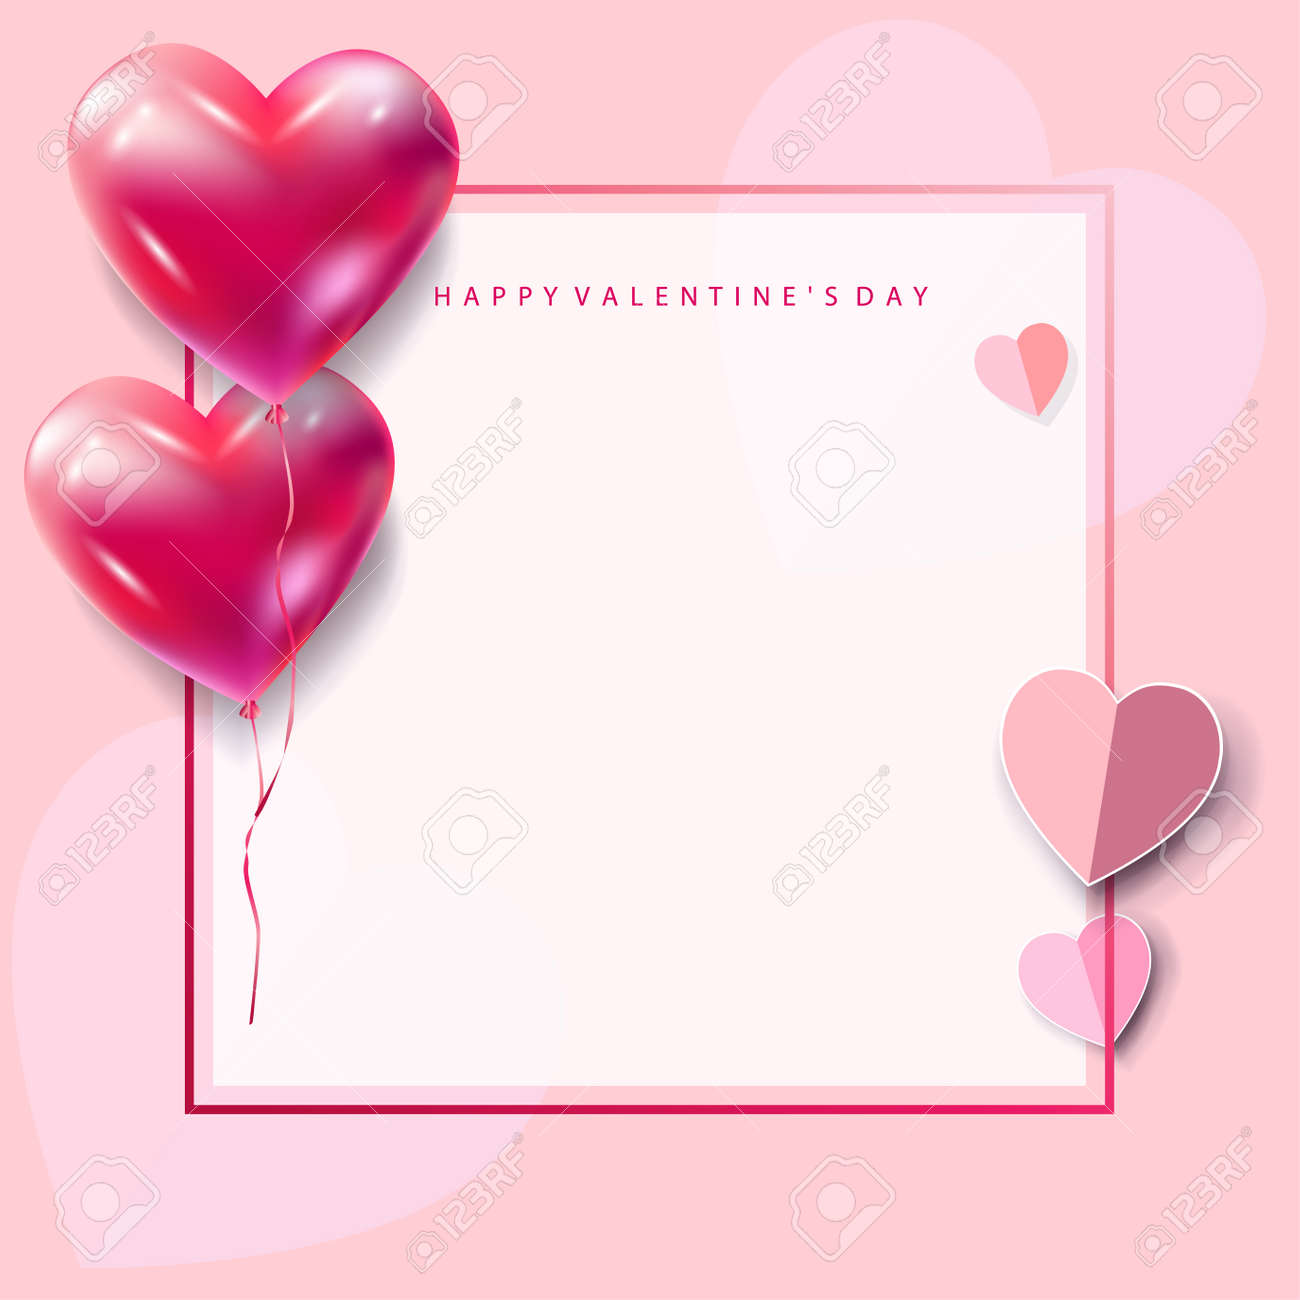 Romance frame heart shape balloons poster vector decoration romance frame heart shape balloons poster vector decoration red heart balloons isolated on abstract futuristic biocorpaavc